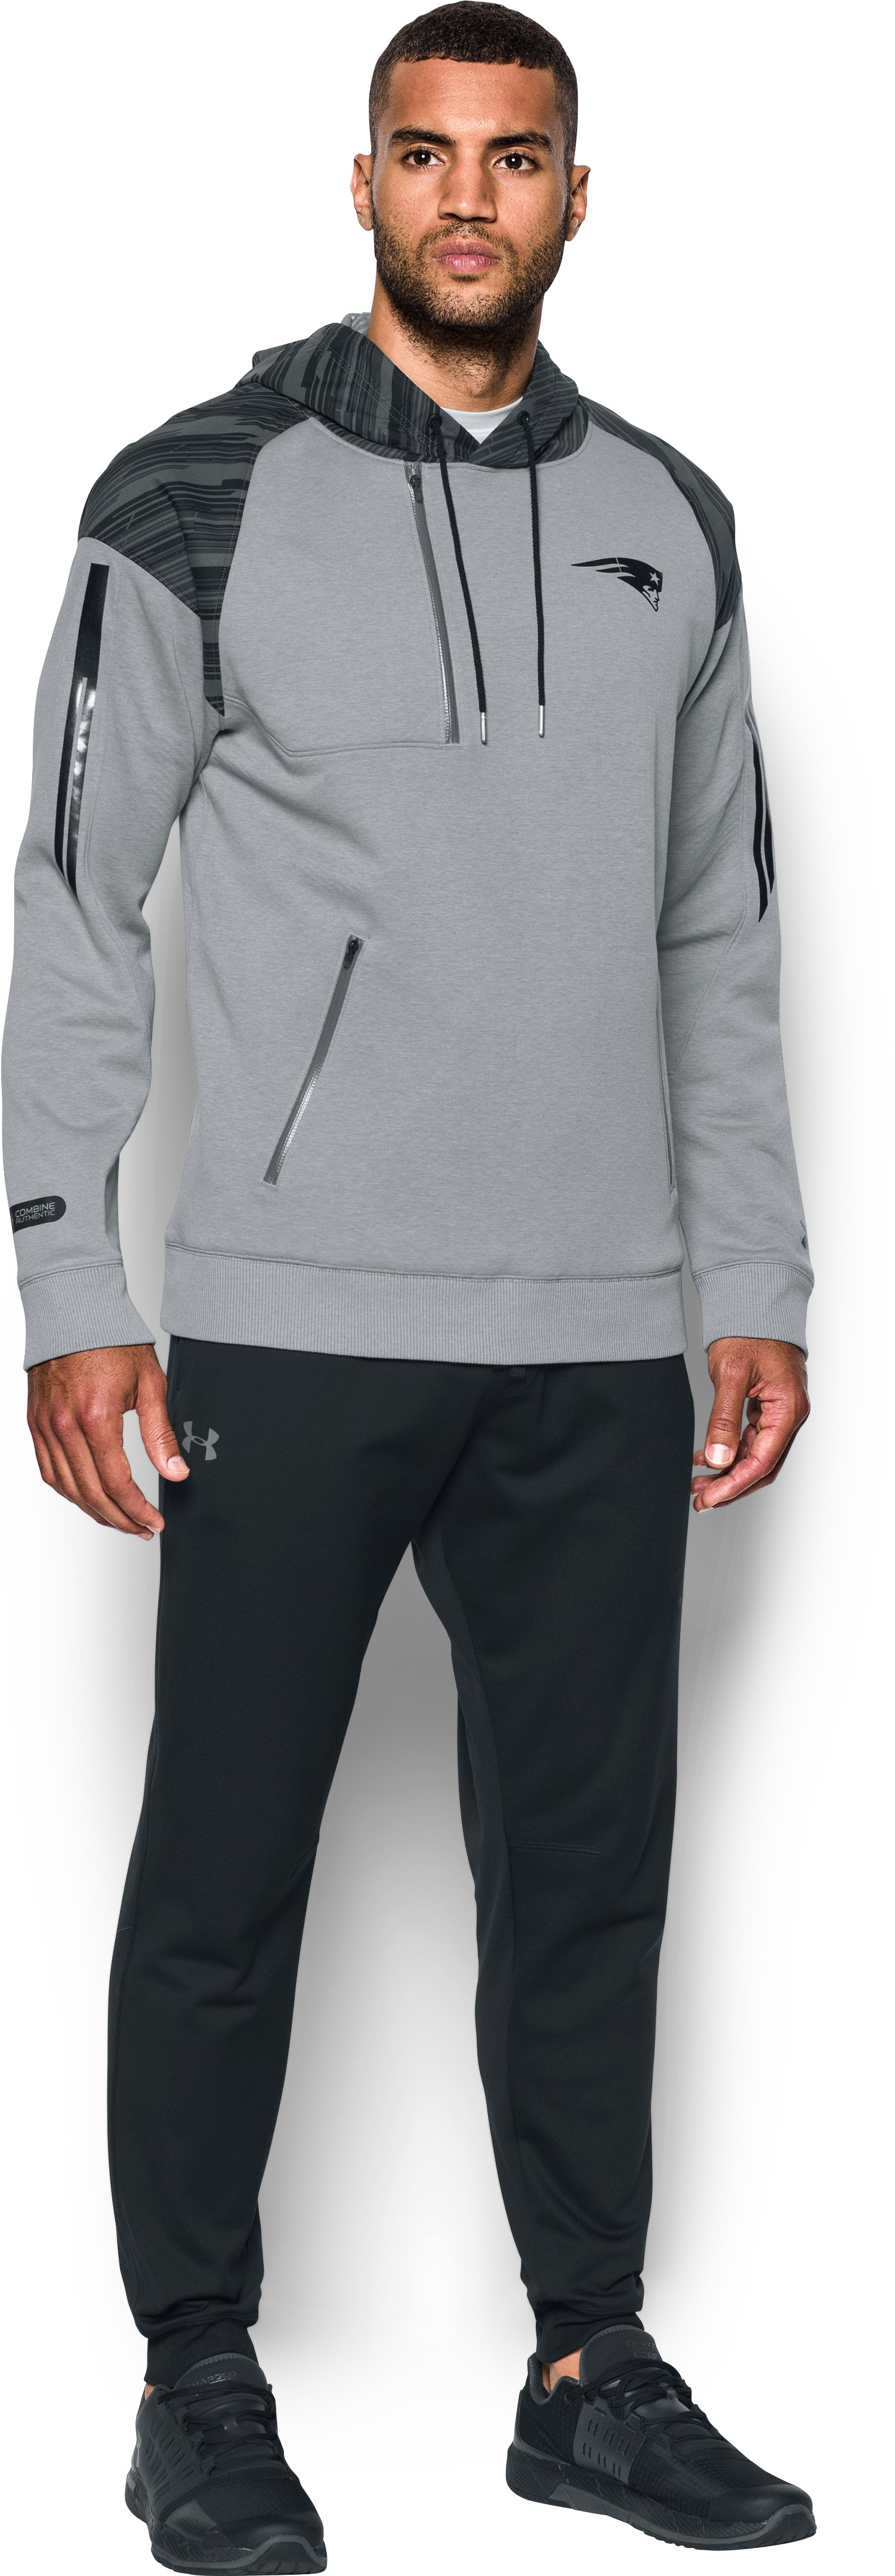 Men's NFL Combine Authentic UA Pinnacle Hoodie, NFL_NEW ENGLAND PATRIOTS_PINANCLE GRAY, Front